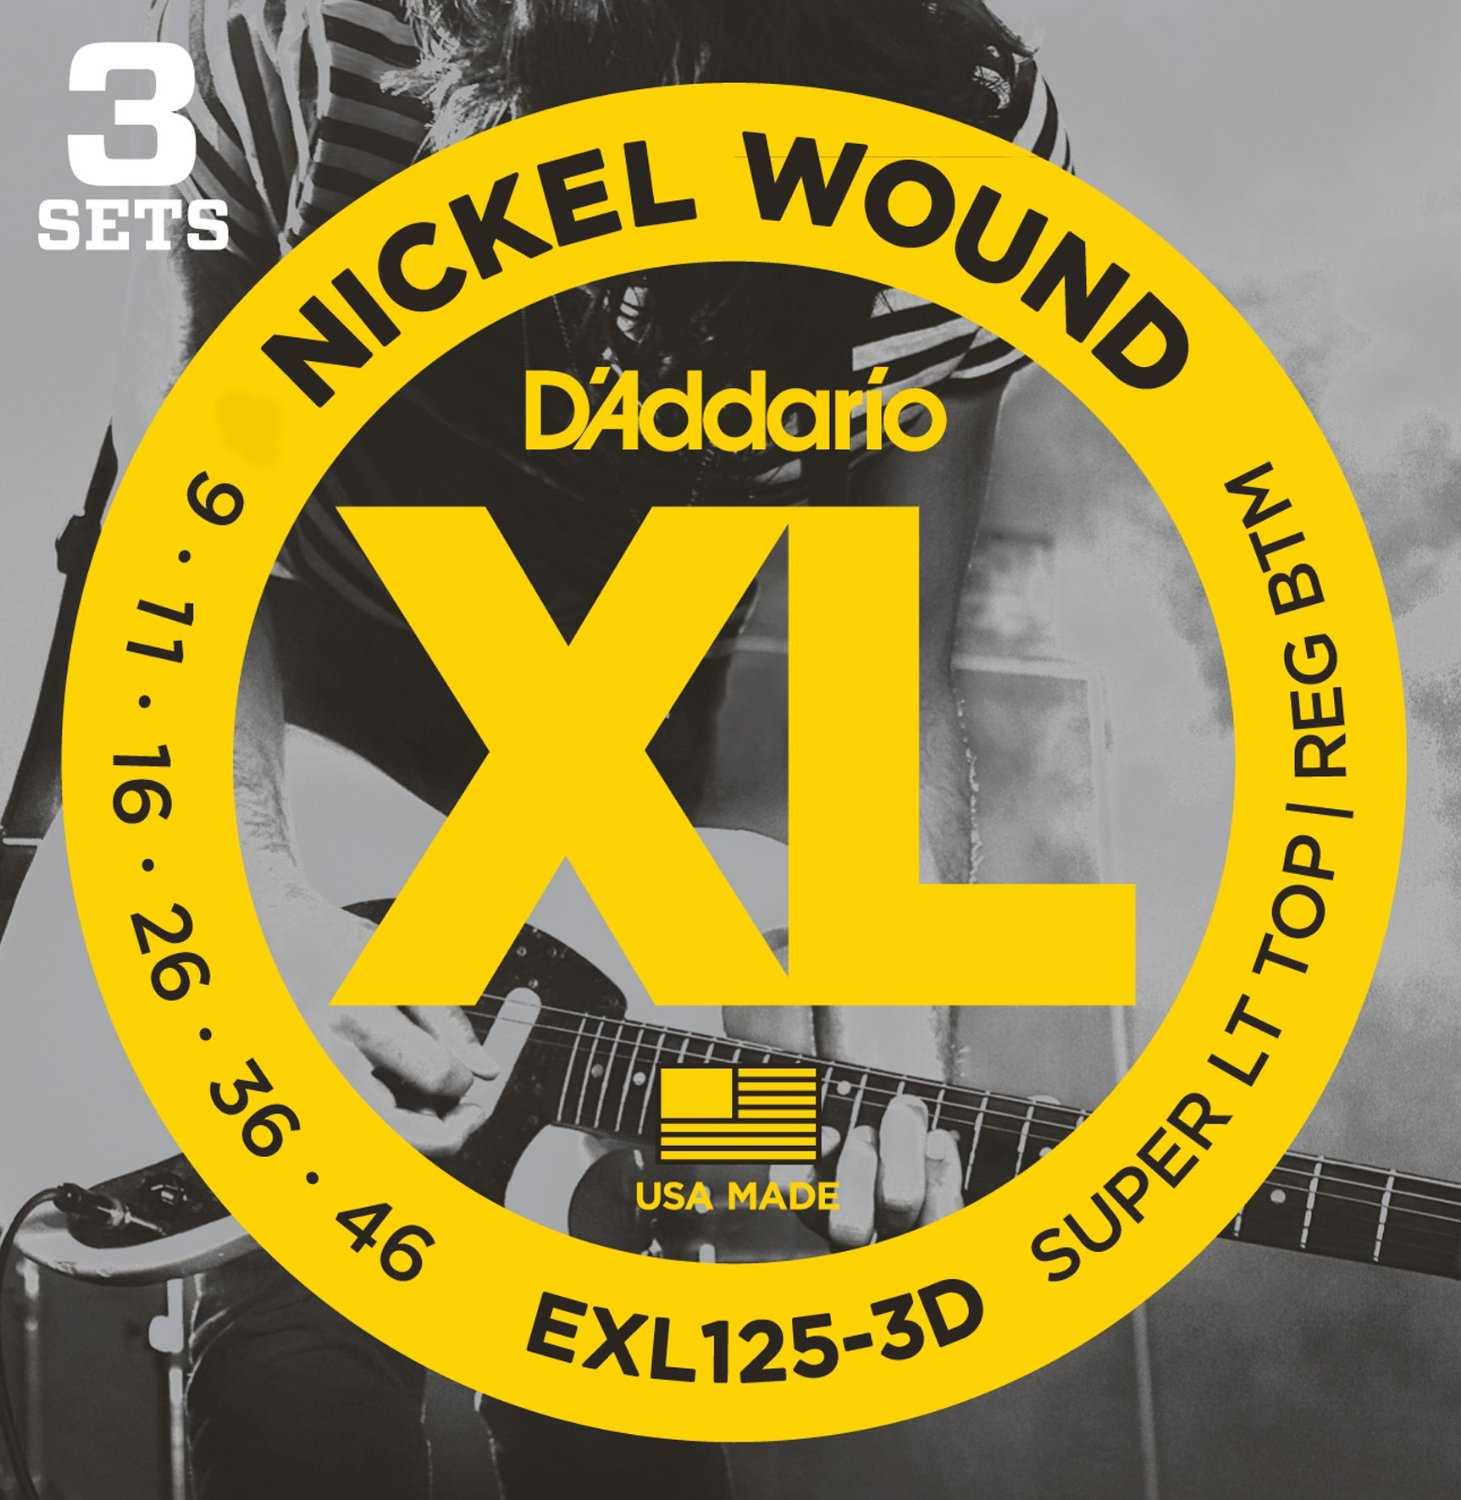 EXL125-3D [Nickel Wound 09-46] 3セット